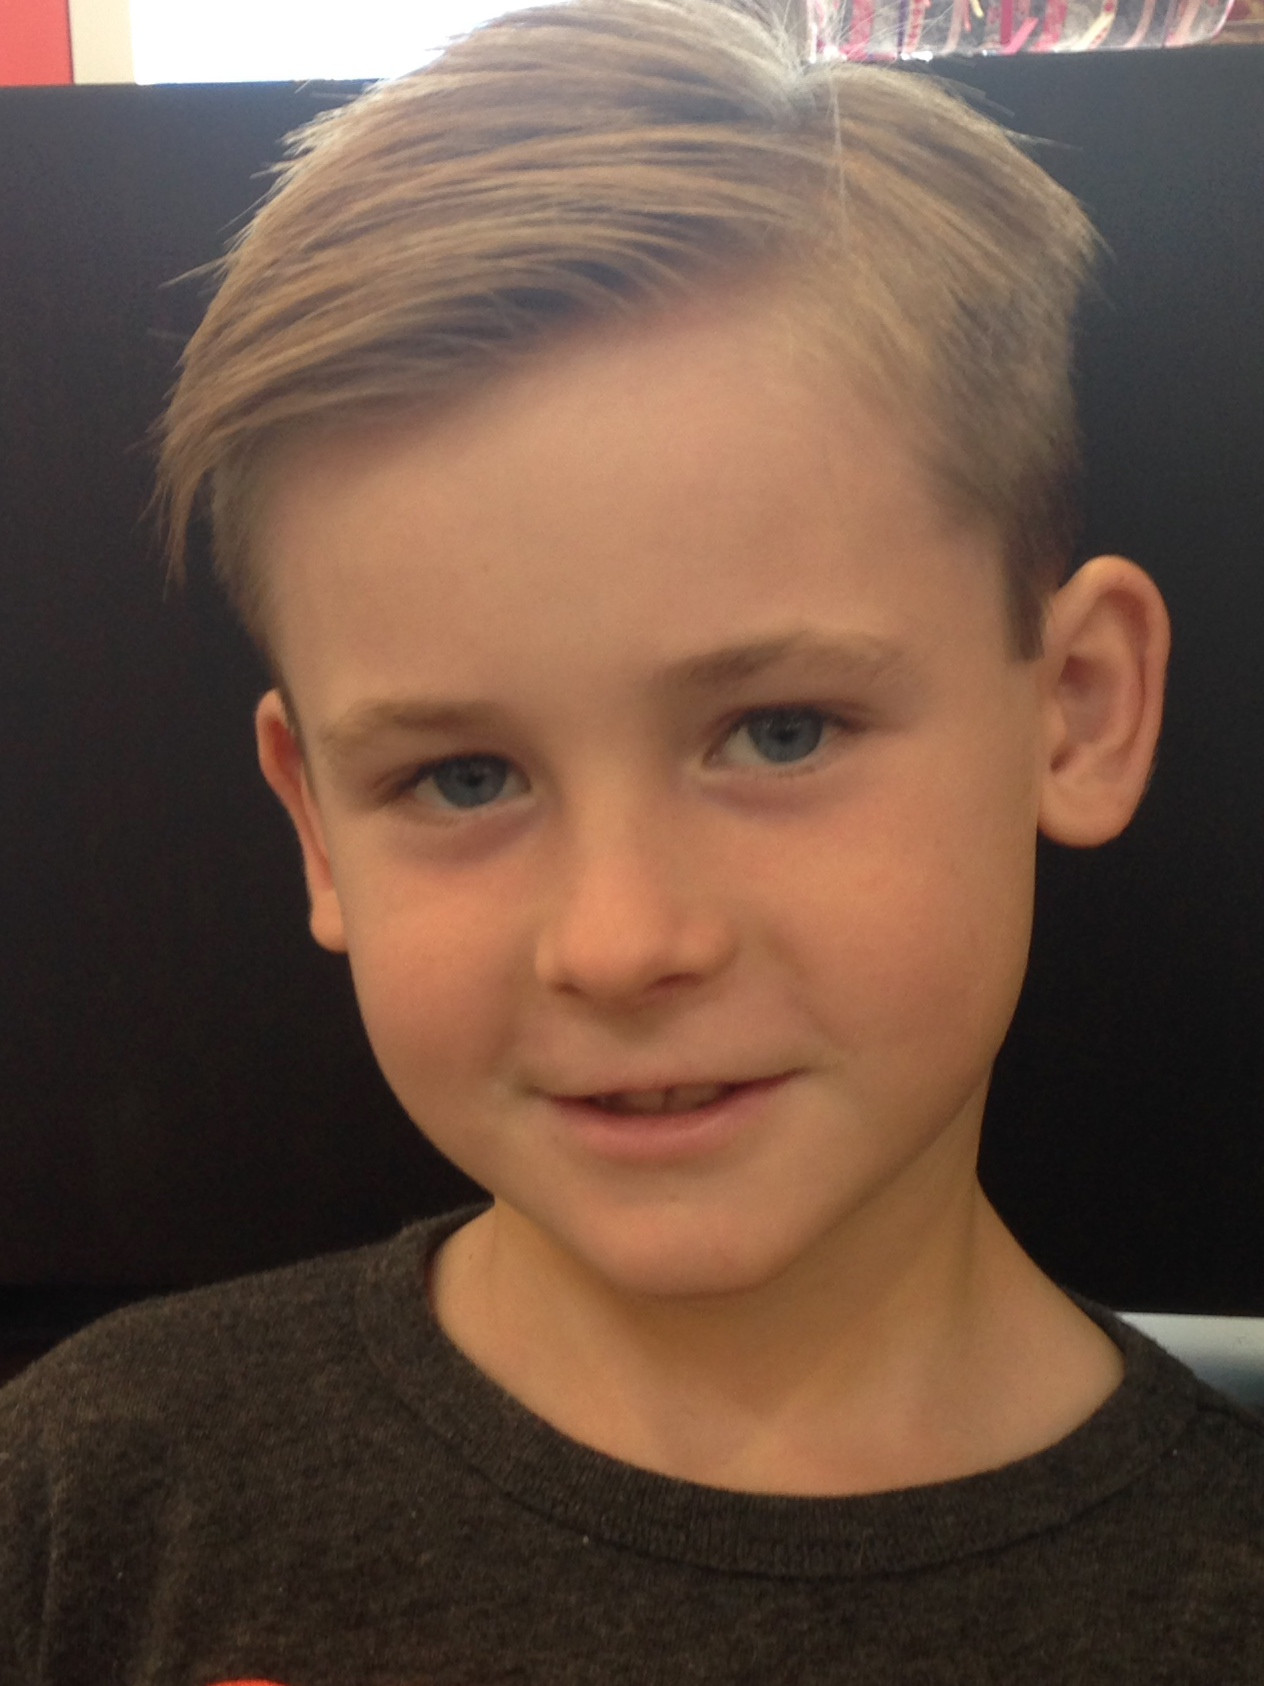 Best ideas about Kids Hair Cut . Save or Pin Tipperary Kids Haircuts Beverly Hills Los Angeles Now.